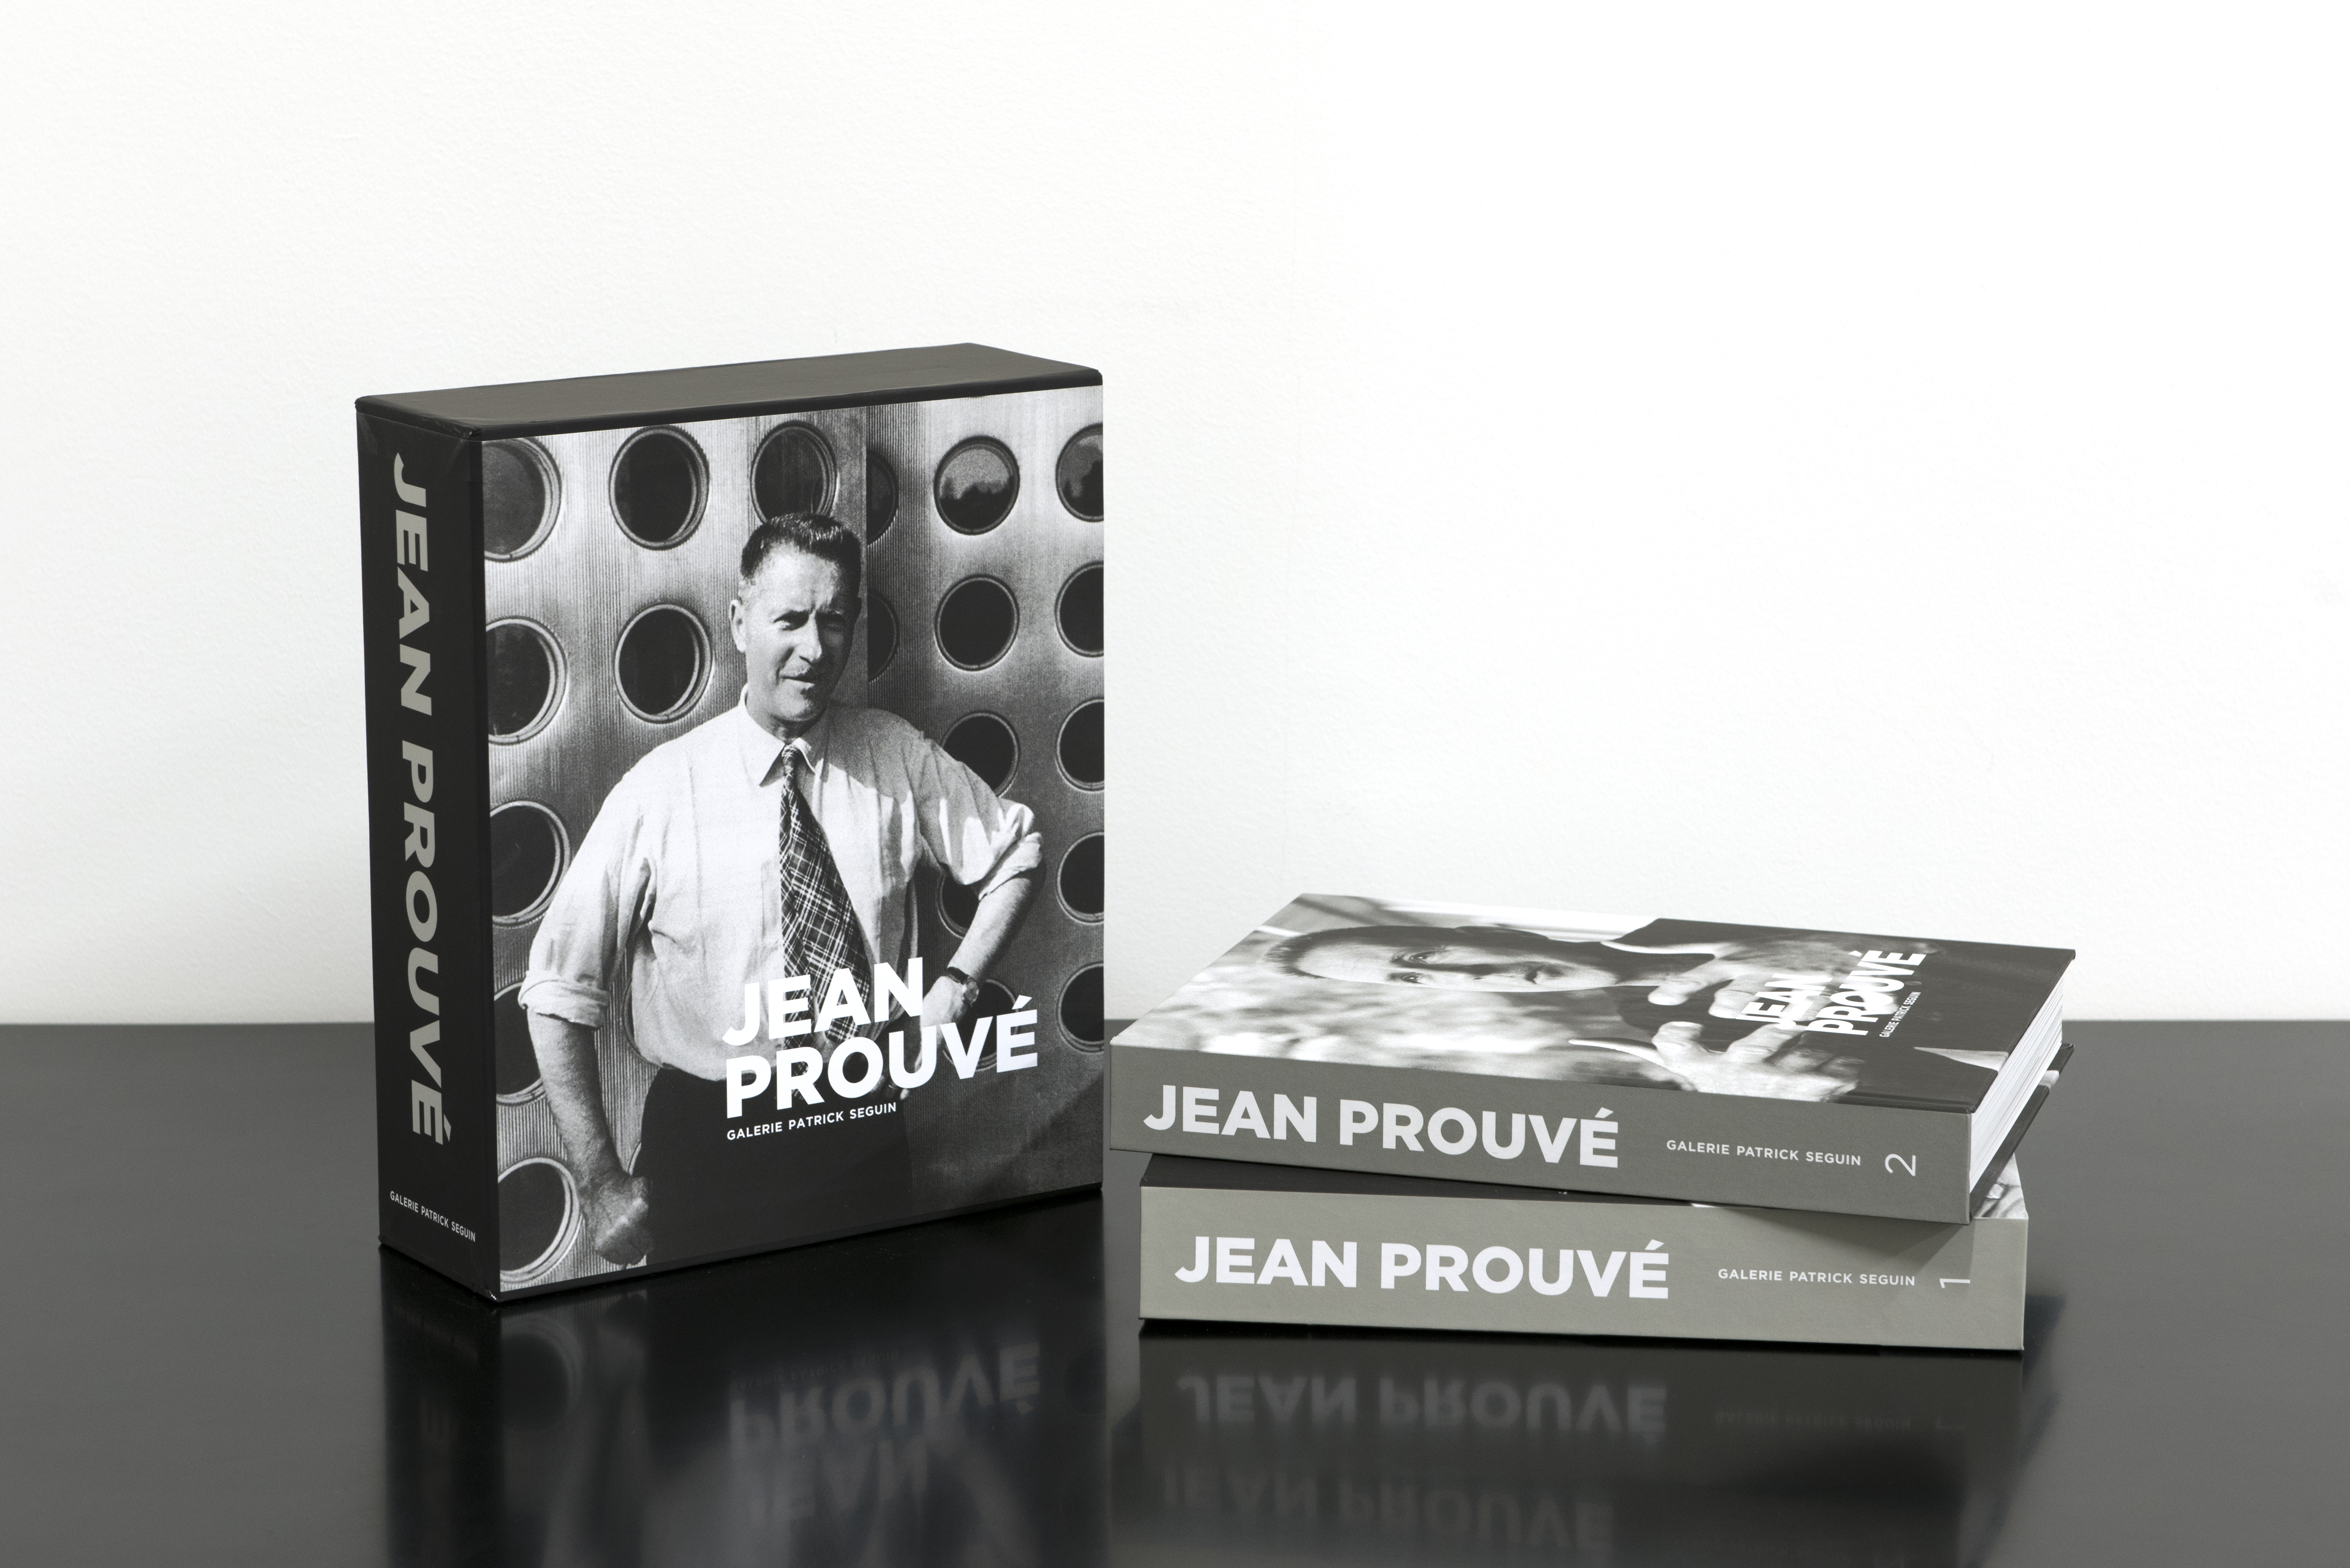 THE GALERIE PATRICK SEGUIN CELEBRATES THE LAUNCH OF A BOOK ON JEAN PROUVE